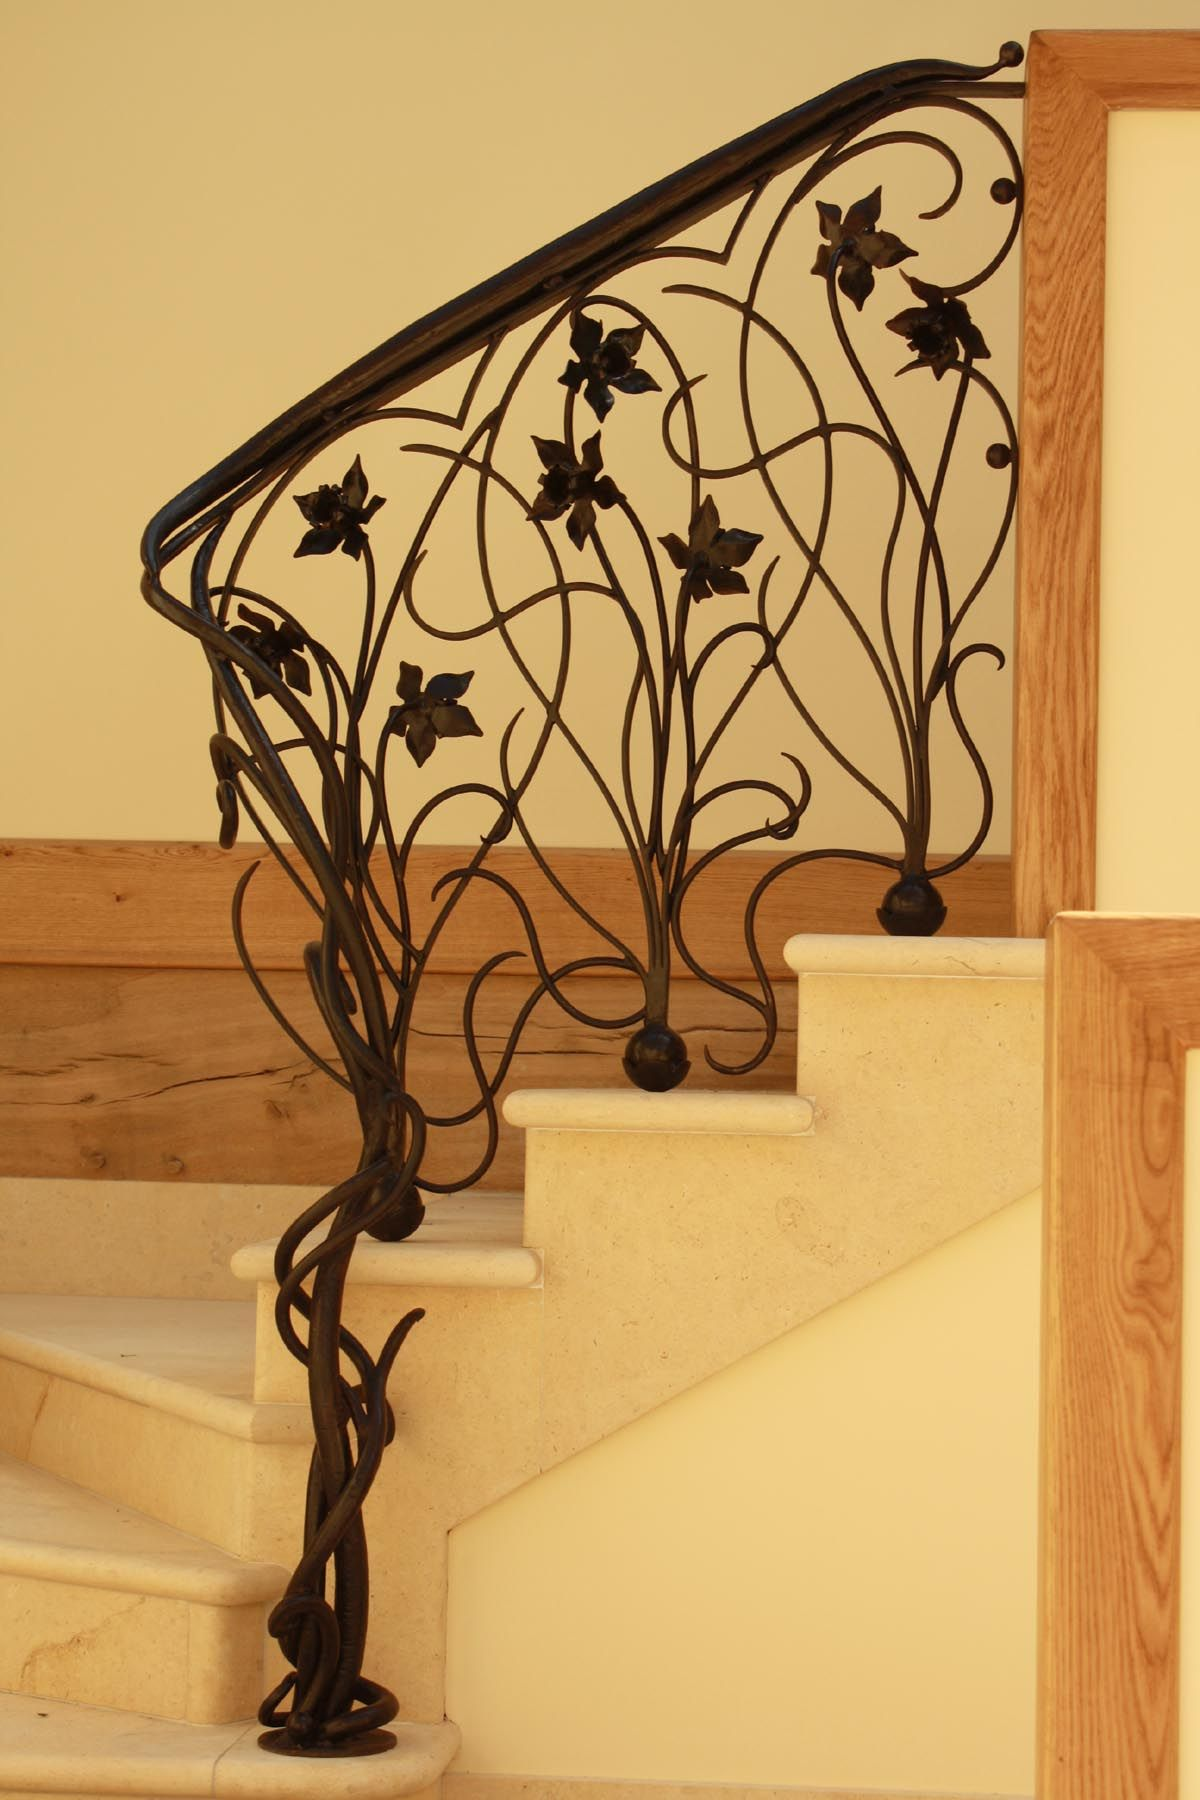 metal sculpture railings ideas | ... railing design for a juloiet ...